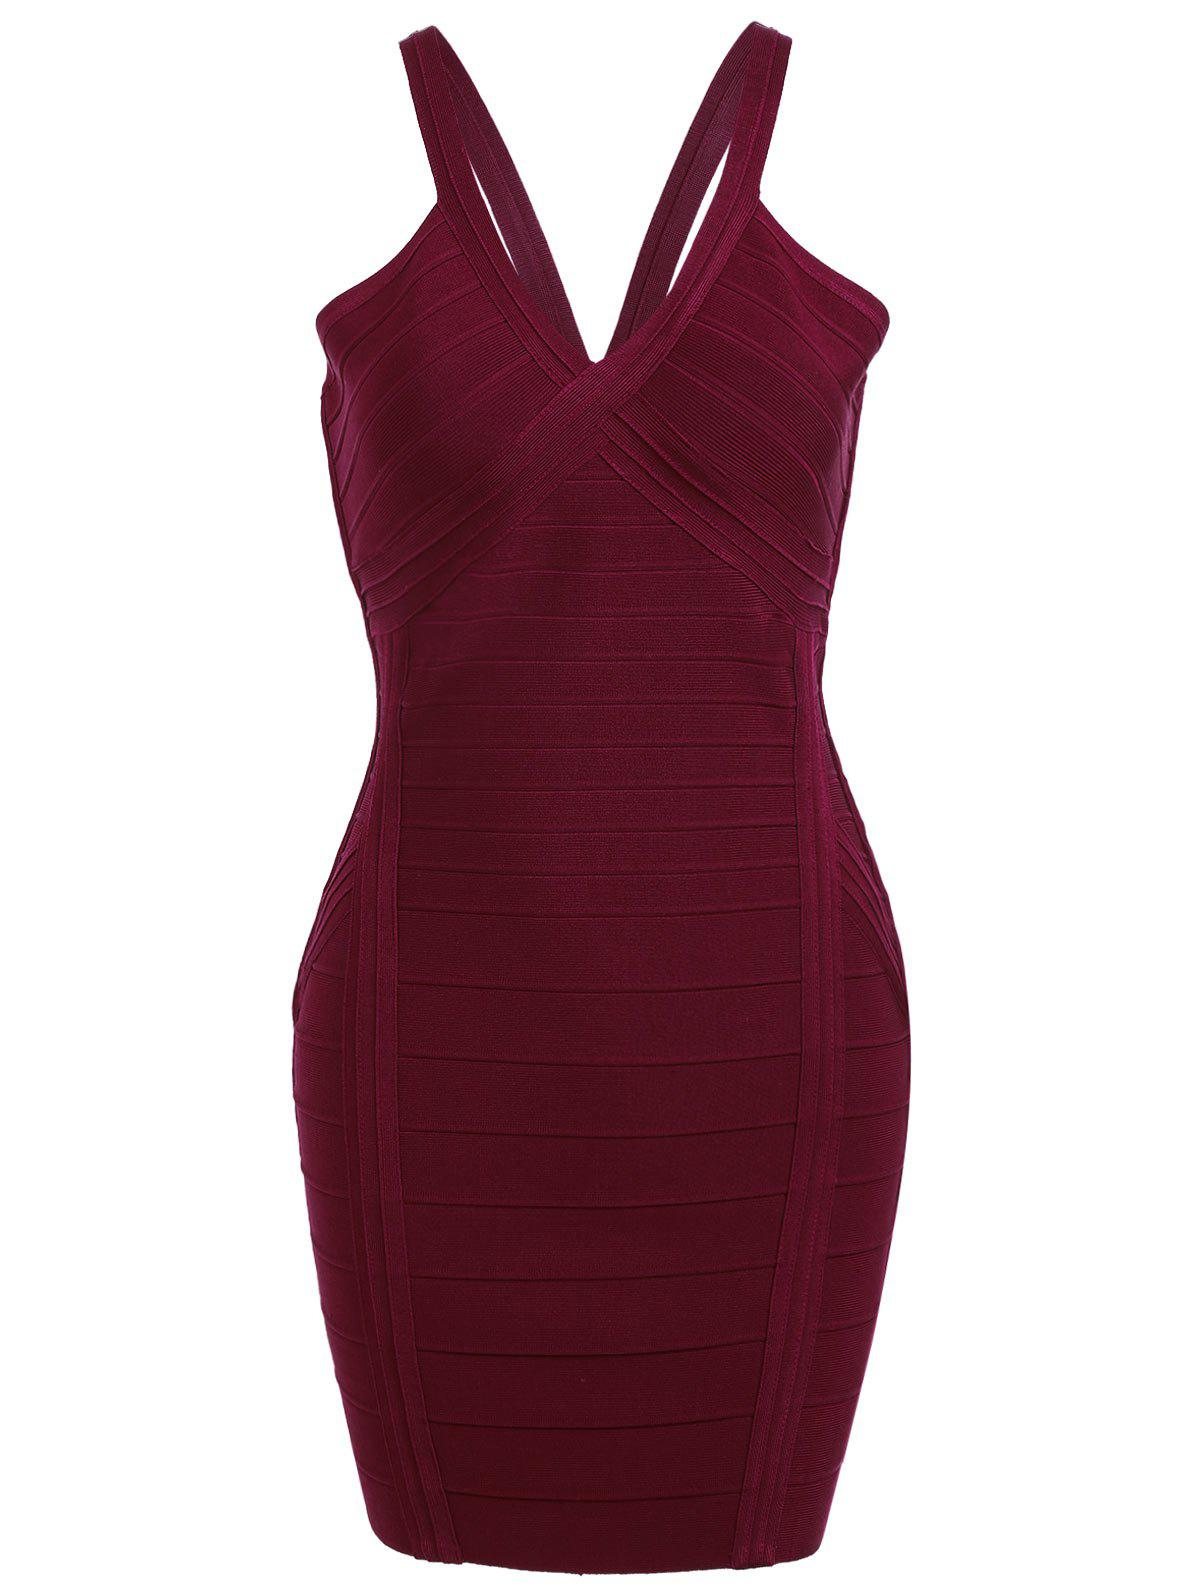 Cami Strap Night Out Bandage Dress - Rouge vineux L